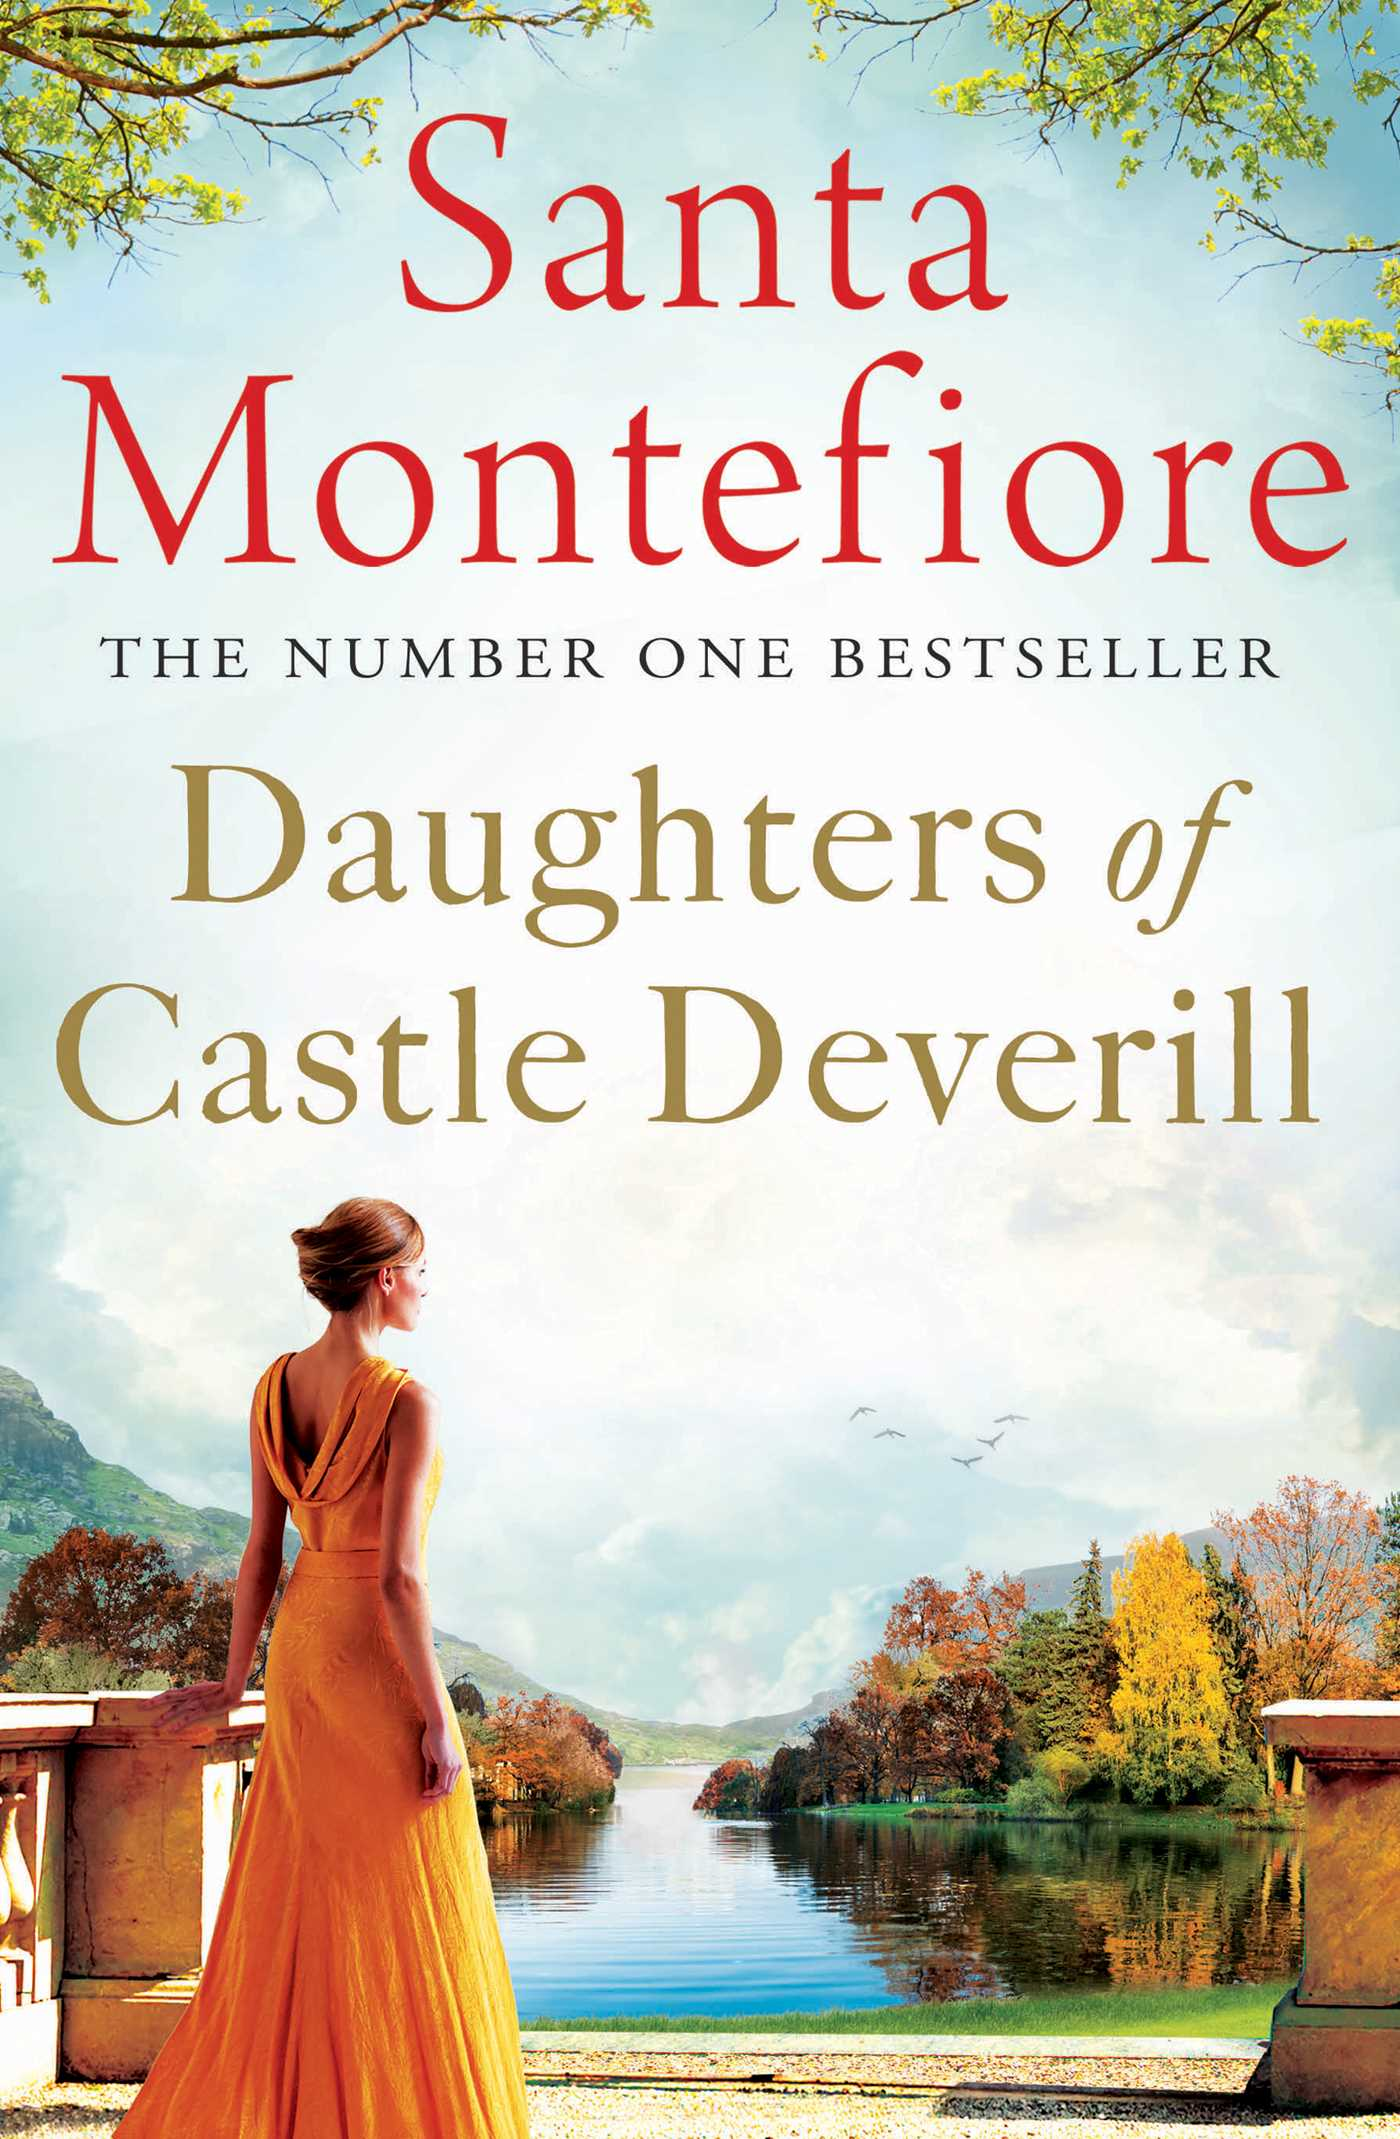 Daughters of Castle Deverill by Santa Montefiore